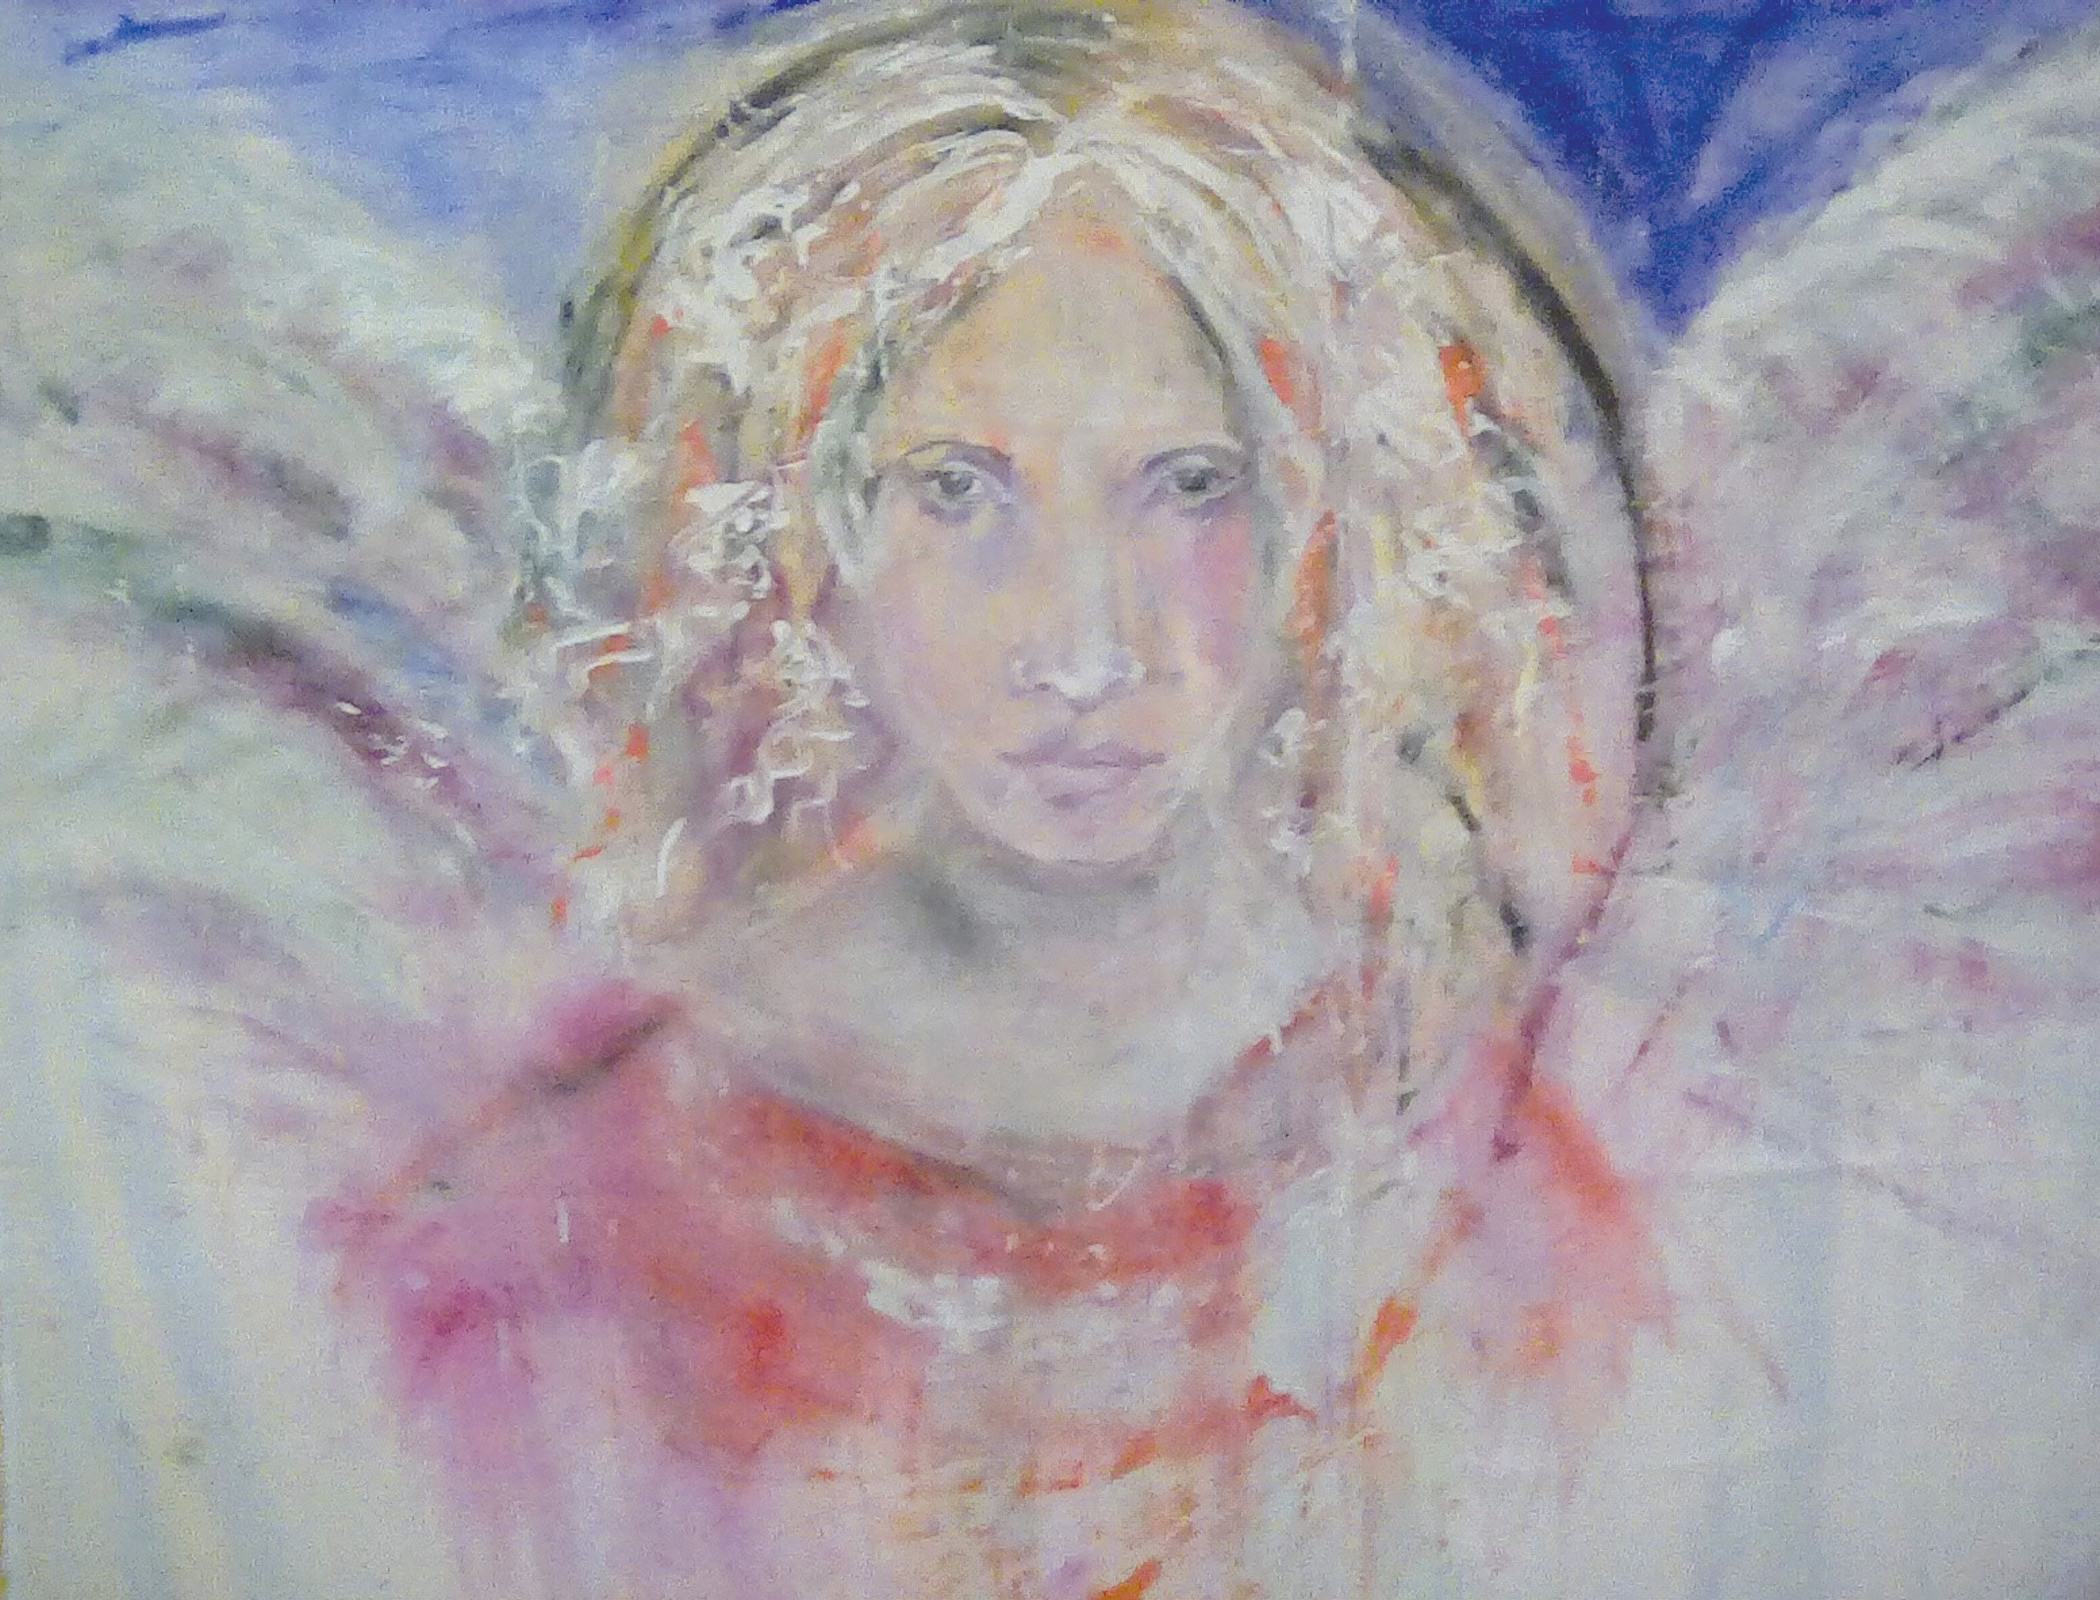 The Sumter Artists' Guild Holiday Mart will feature 16 guild members selling their artwork such as the angel painting by Connie Brennan, above, from 10 a.m. to 4 p.m. Saturday during Christmas at Patriot Hall. A variety of artwork in several different media will be available for purchase as Christmas gifts or for the art lover's personal collection.